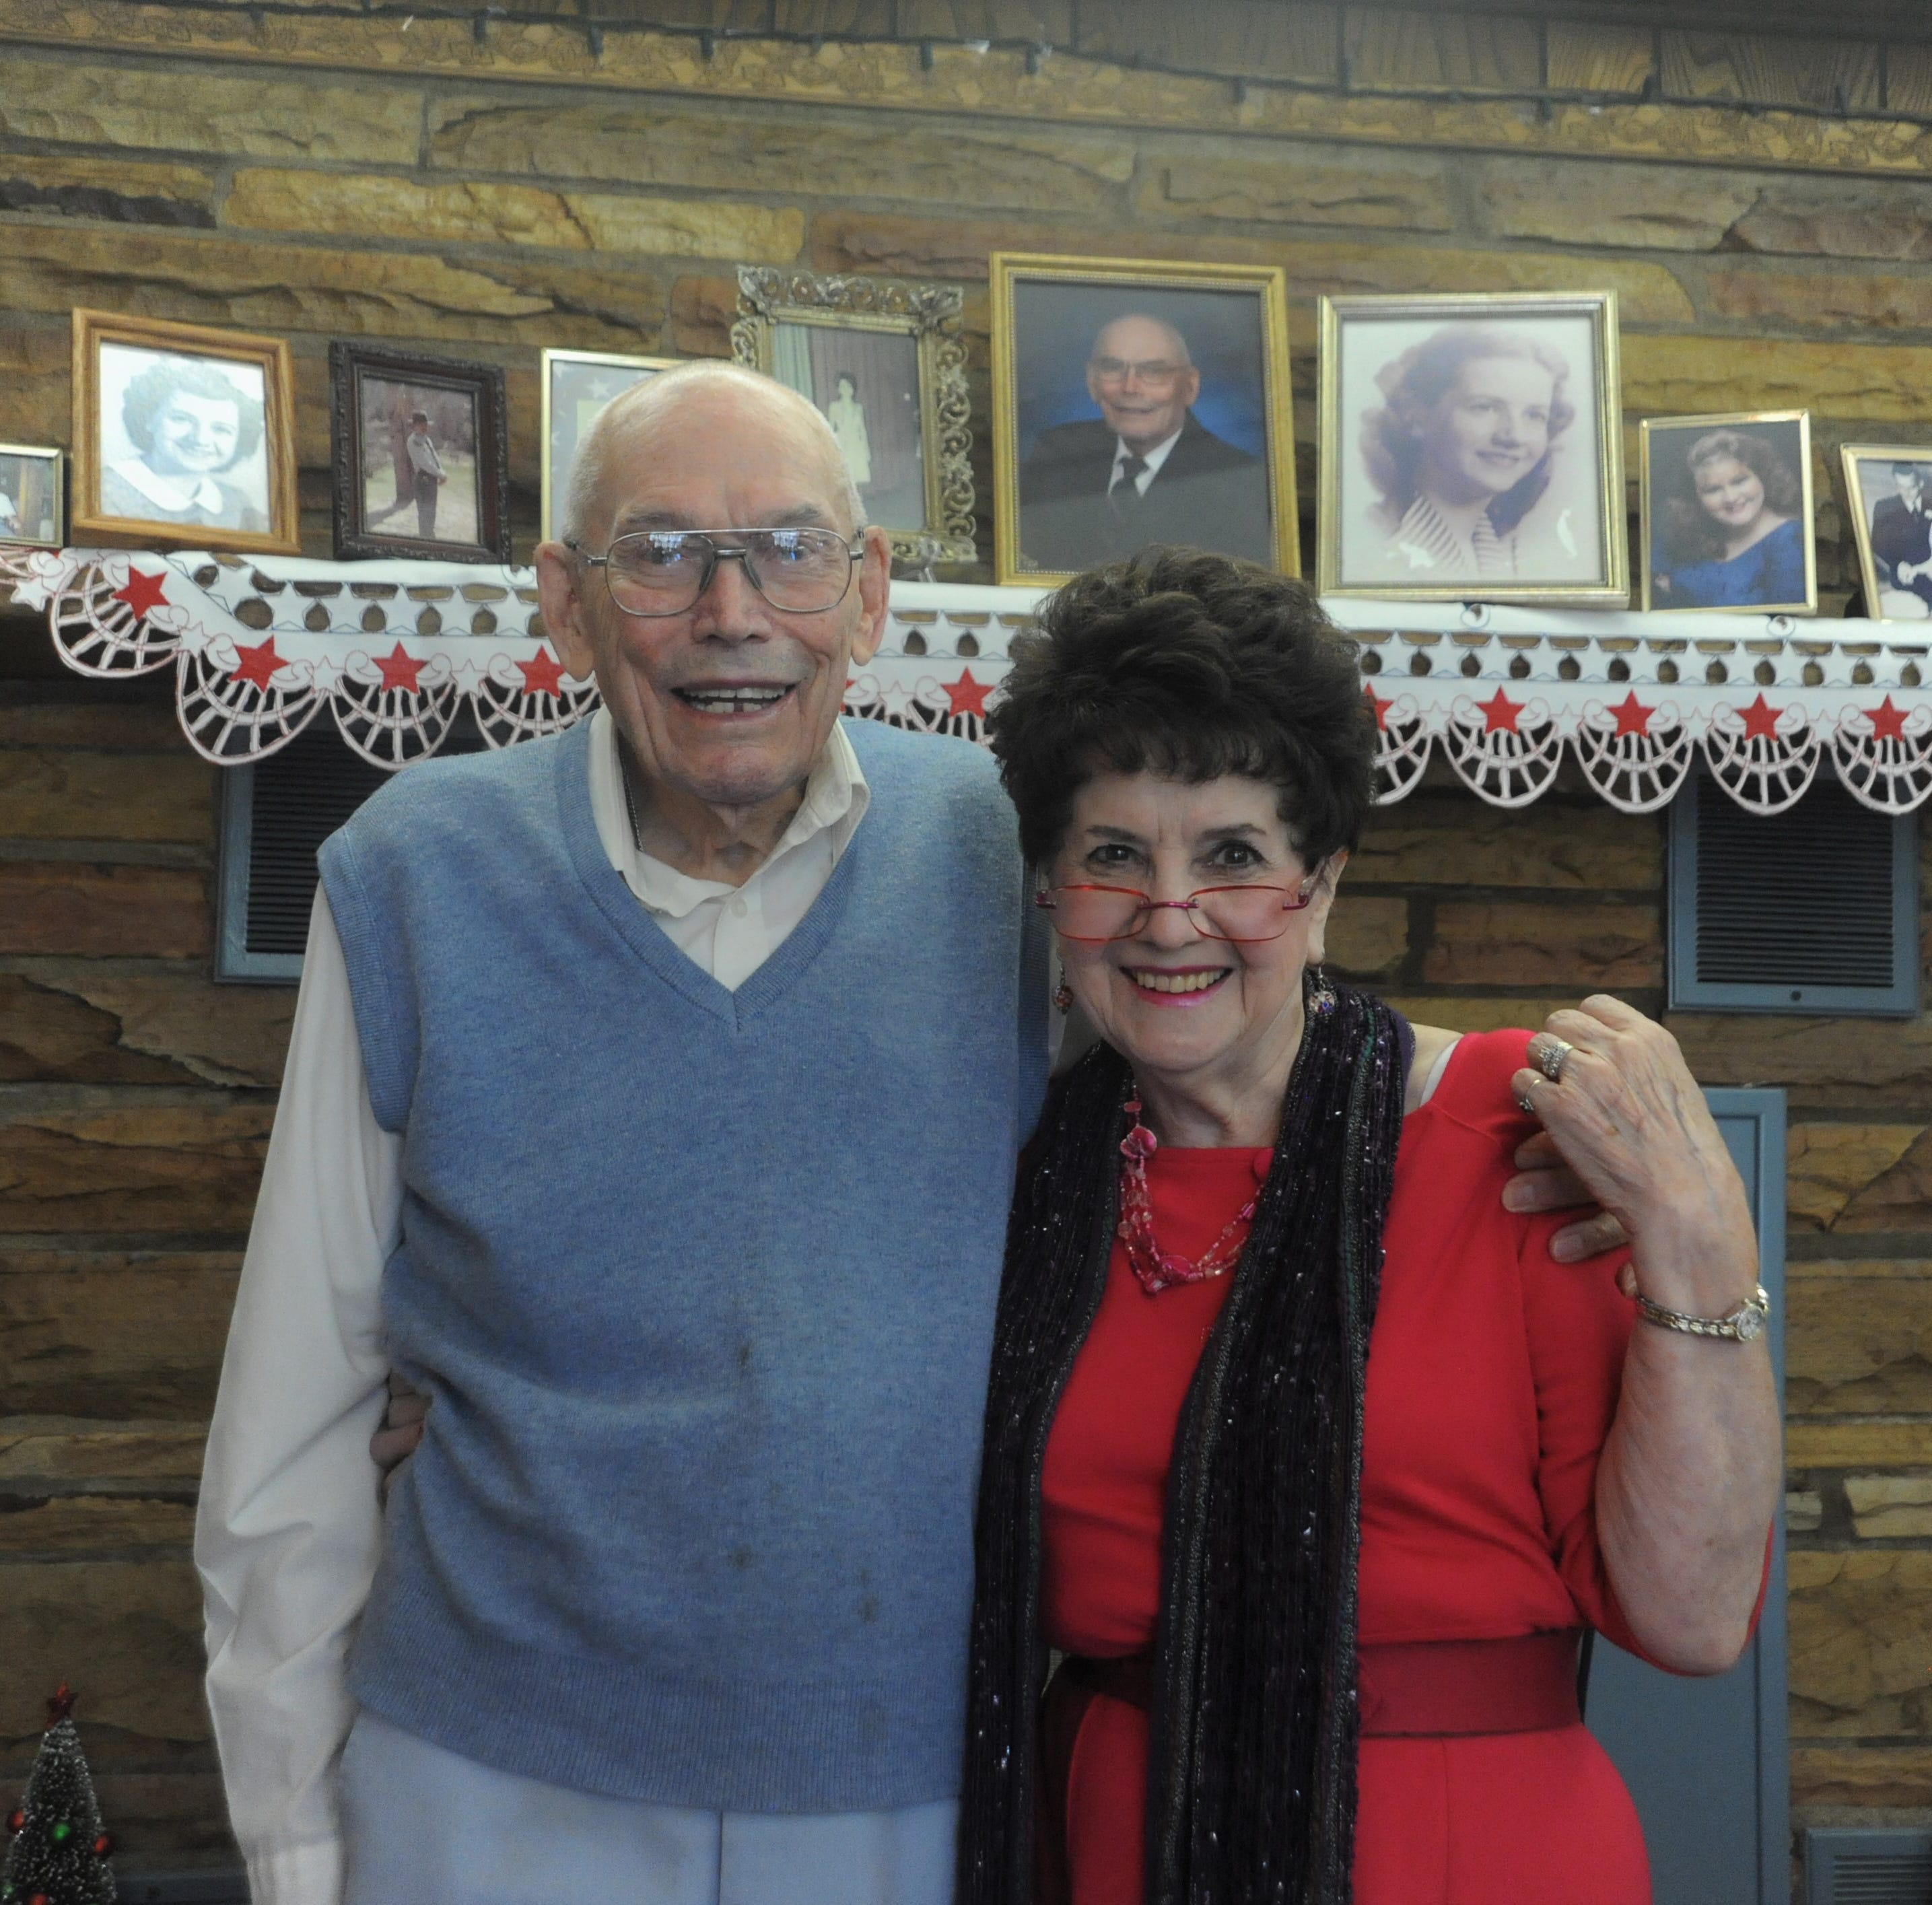 Earl and Carolyn Snypes celebrate 70 years of marriage in Ridgecrest